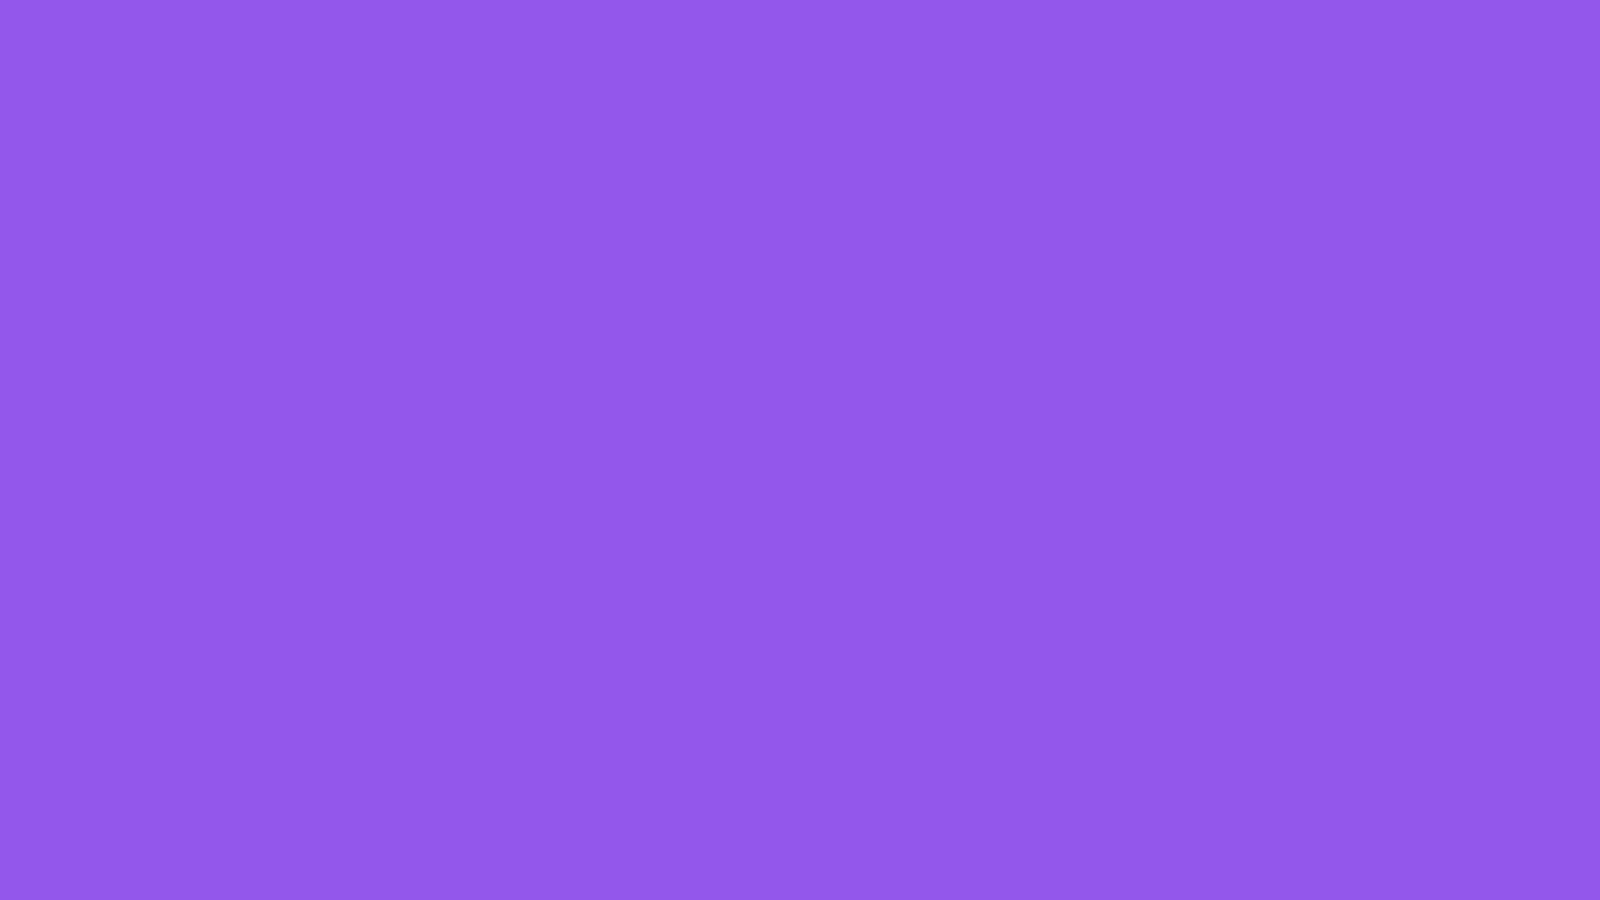 Plain Light Purple Color Wallpaper Best HD Wallpapers 1600x900